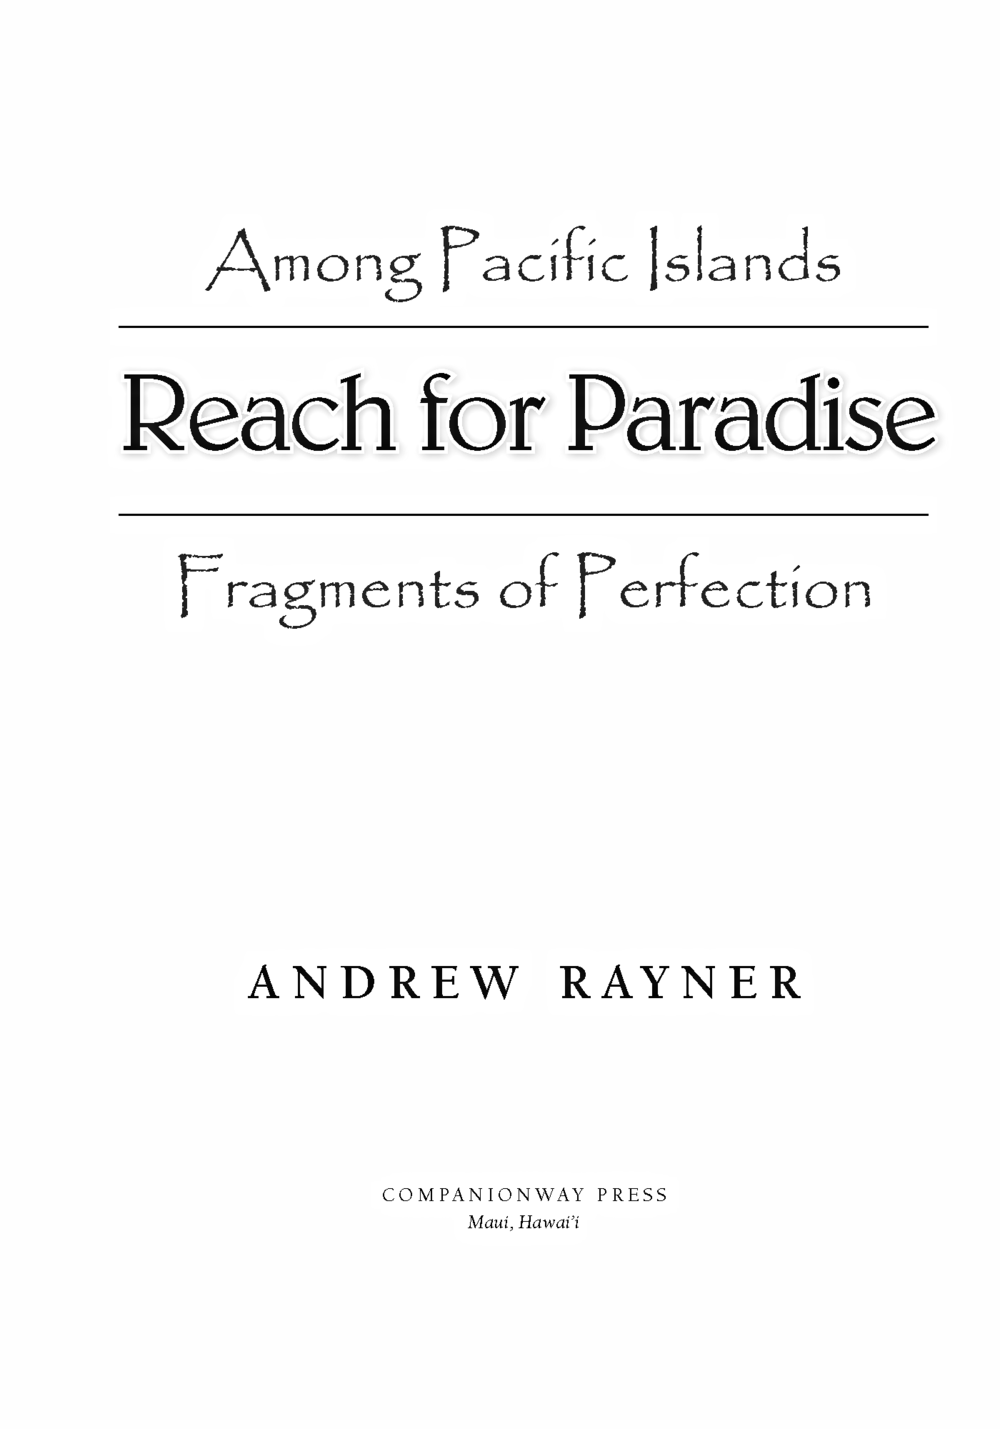 Among Pacific Islands